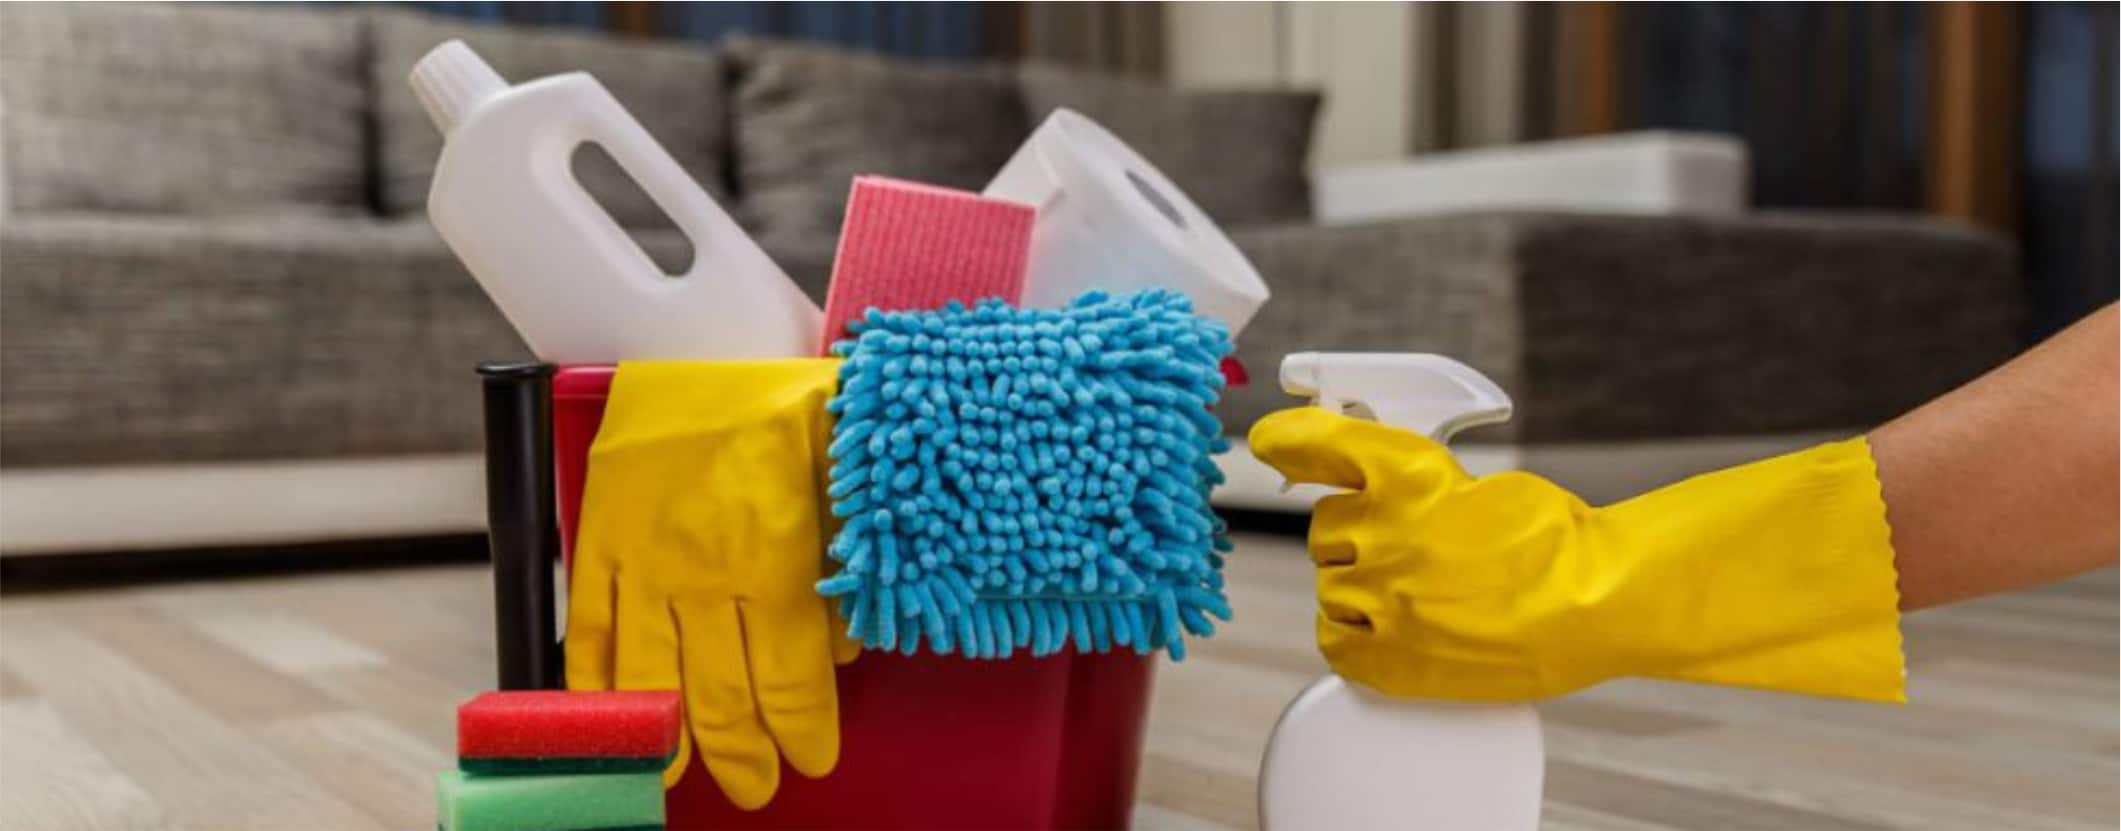 SPOTLESSLY CLEAN HOUSE CLEANING & JANITORIAL SERVICES,